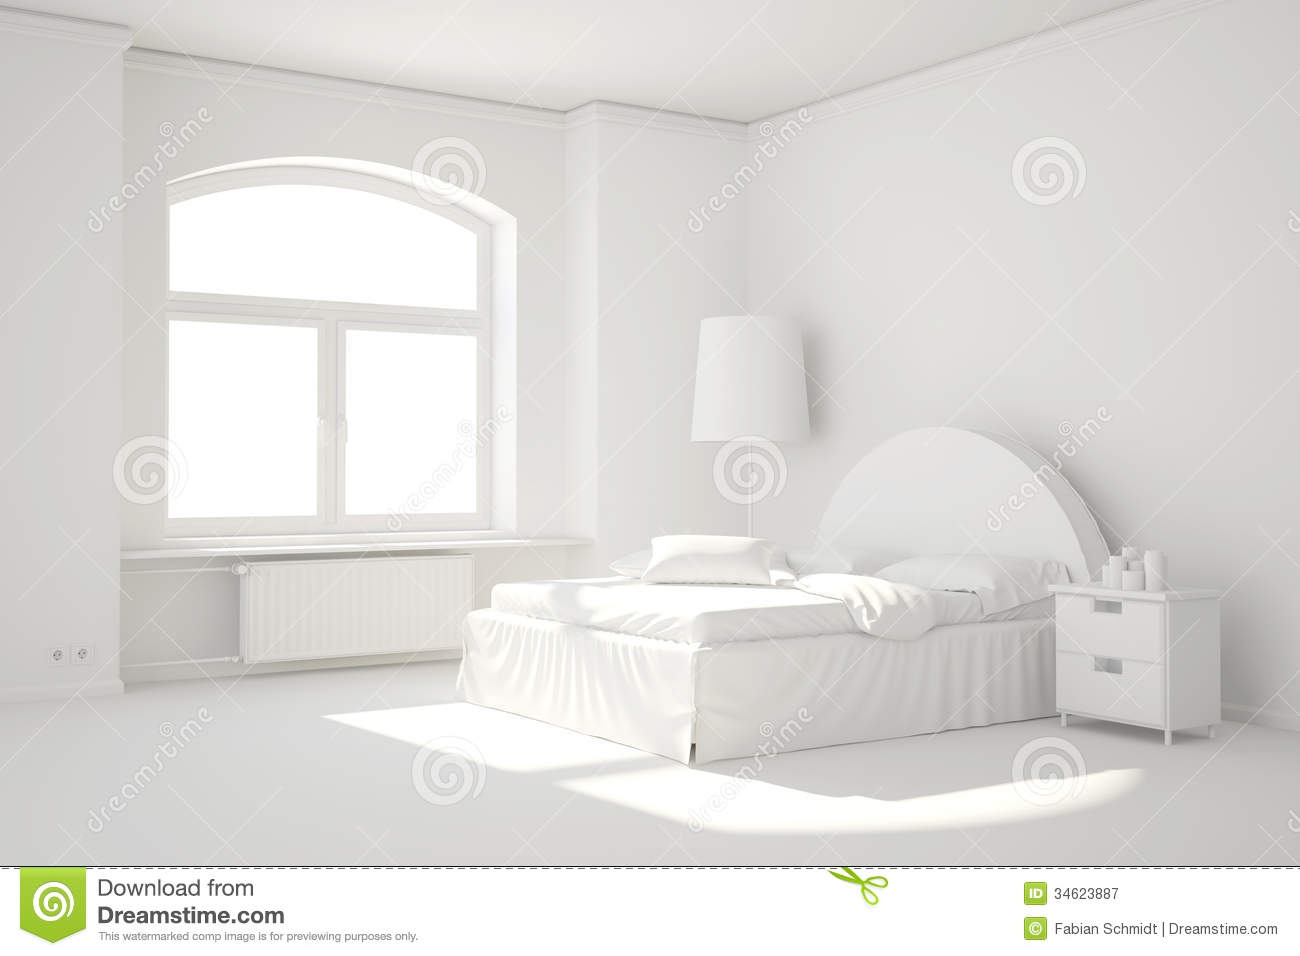 Empty White Bed Room With Window Stock Illustration  Illustration of minimalism building 34623887